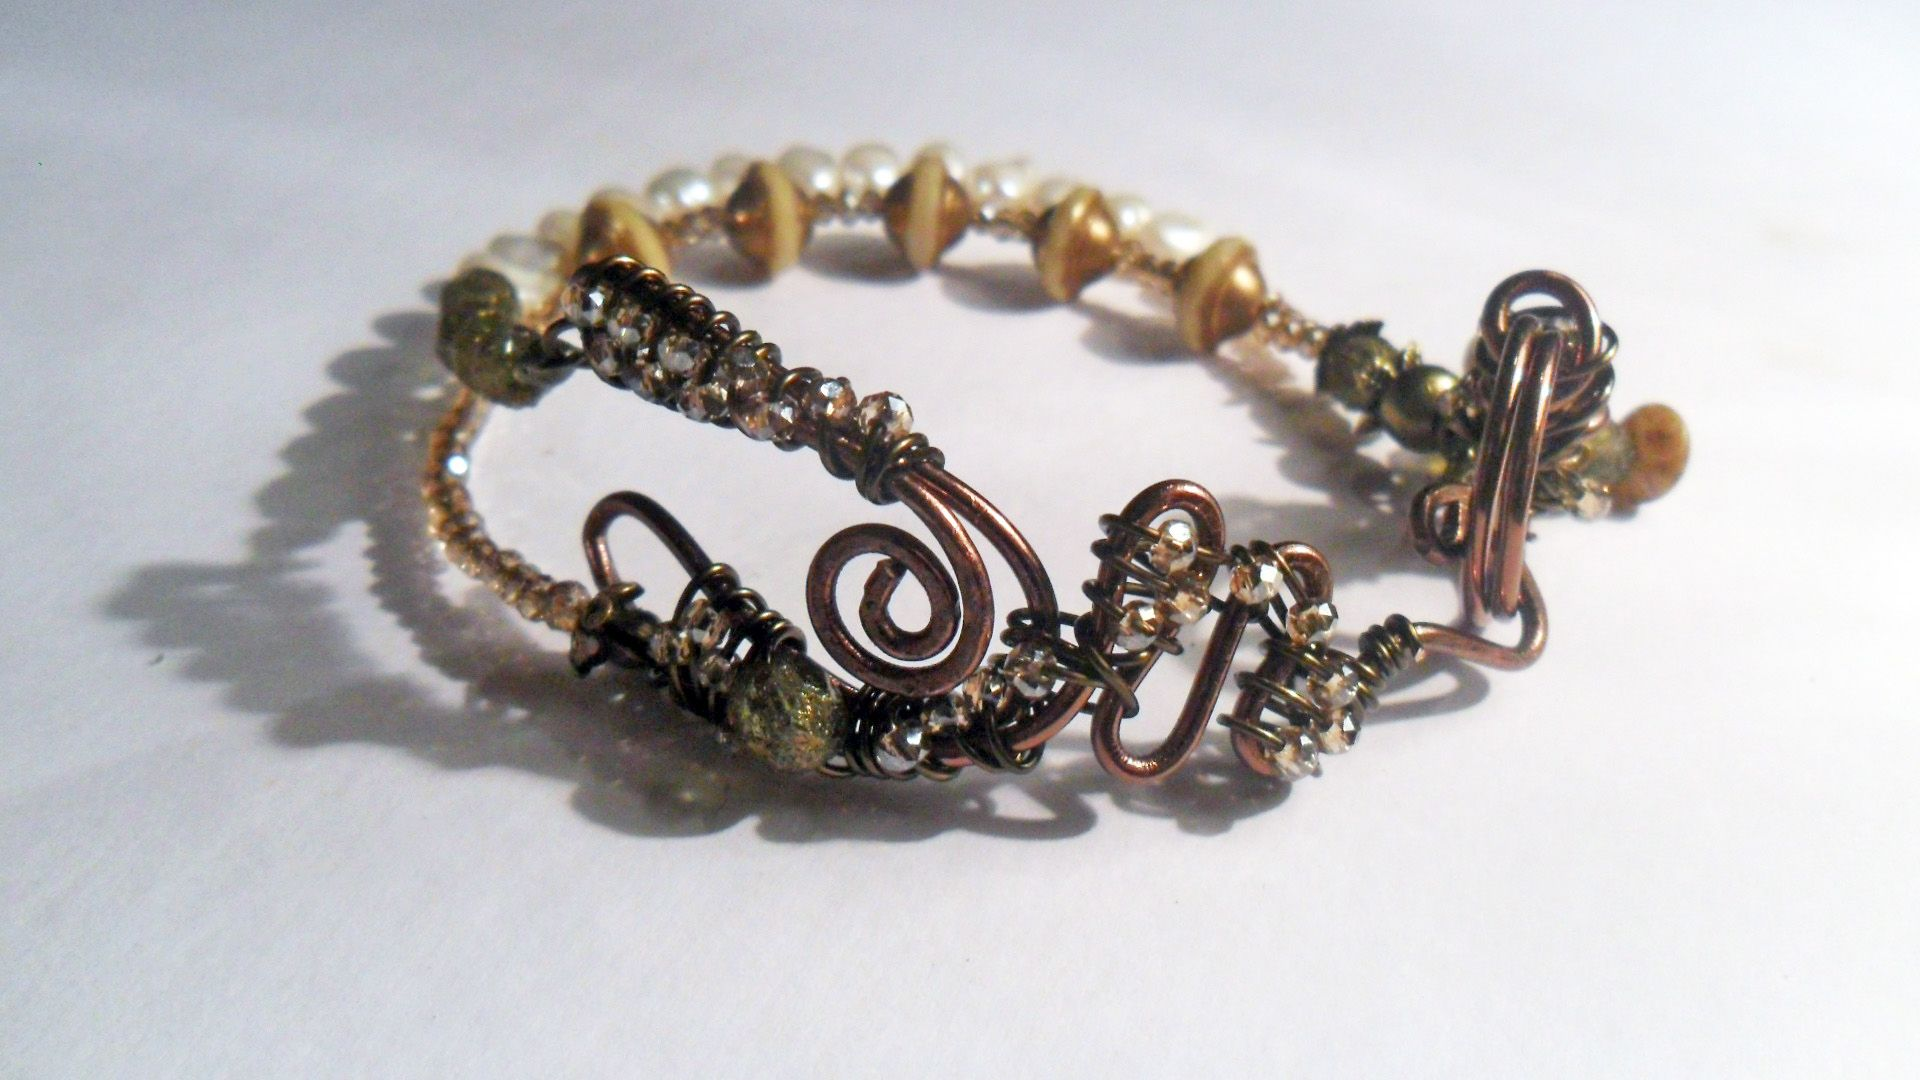 Sold almost instantly, this is a unique handmade bracelet with a wire wrapped clasp, emblazoned with tiny old gold tone faceted Swarovski crystals. The dual strands of the bracelet itself are filled with more of the same crystals, freshwater pearls, and handmade lamp work ivory and gold beads. Beautiful even if I do say so myself!